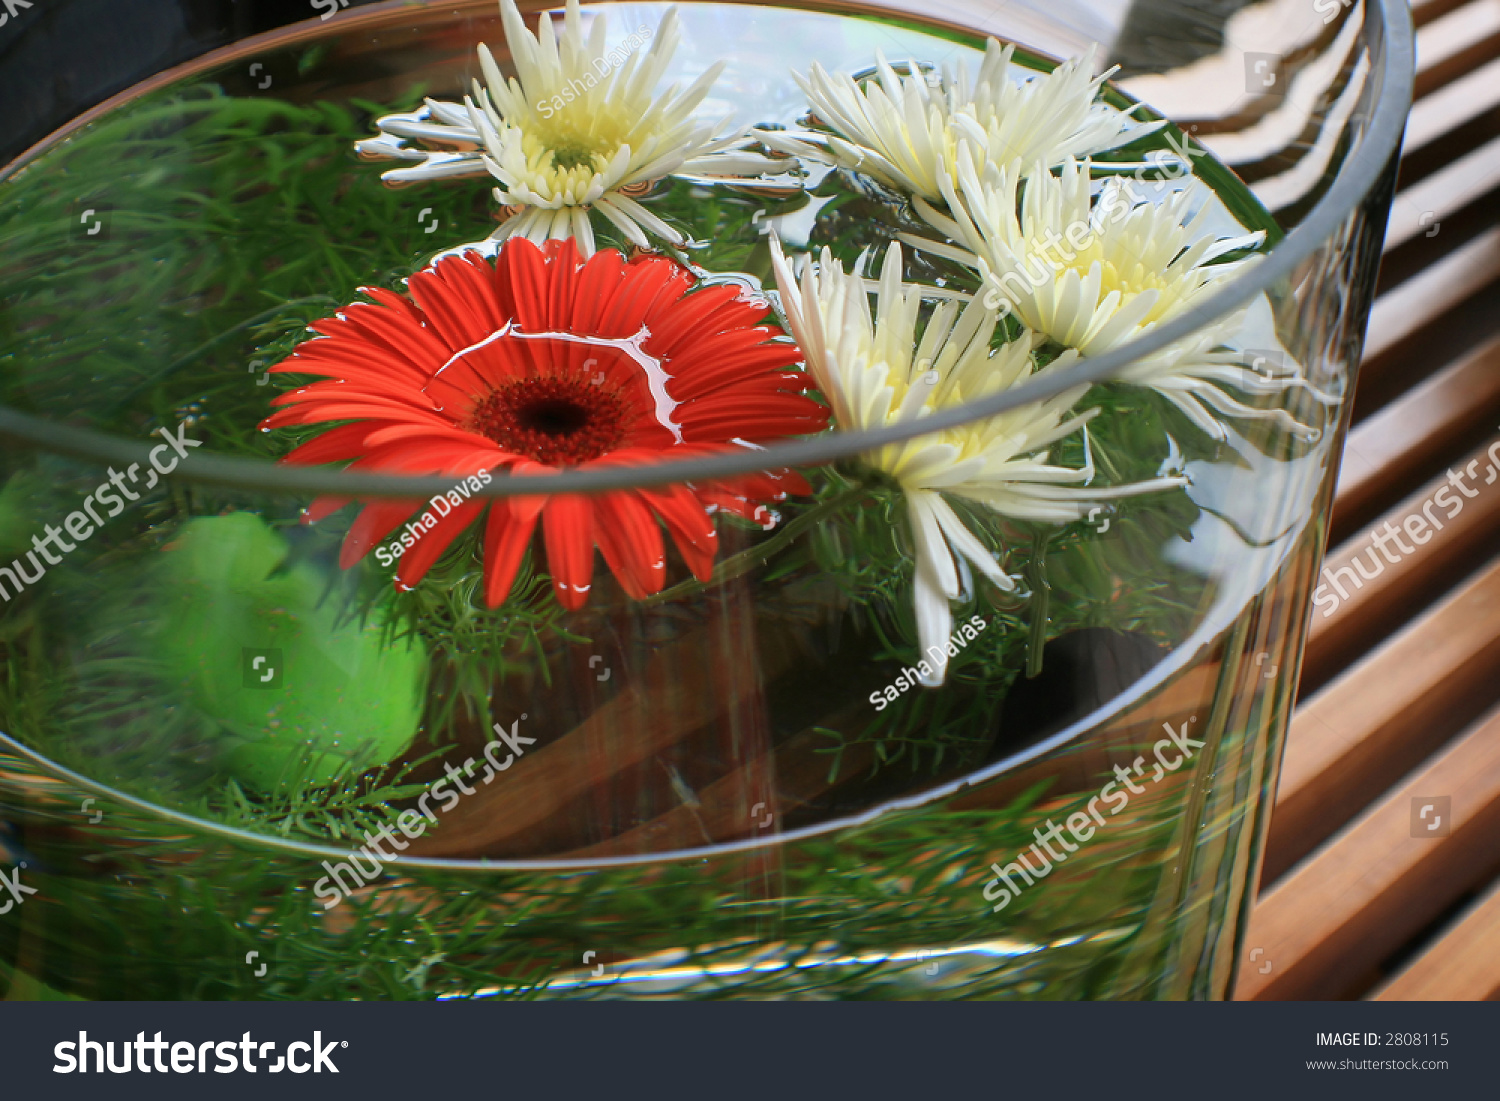 Flower vase with fish - Save To A Lightbox